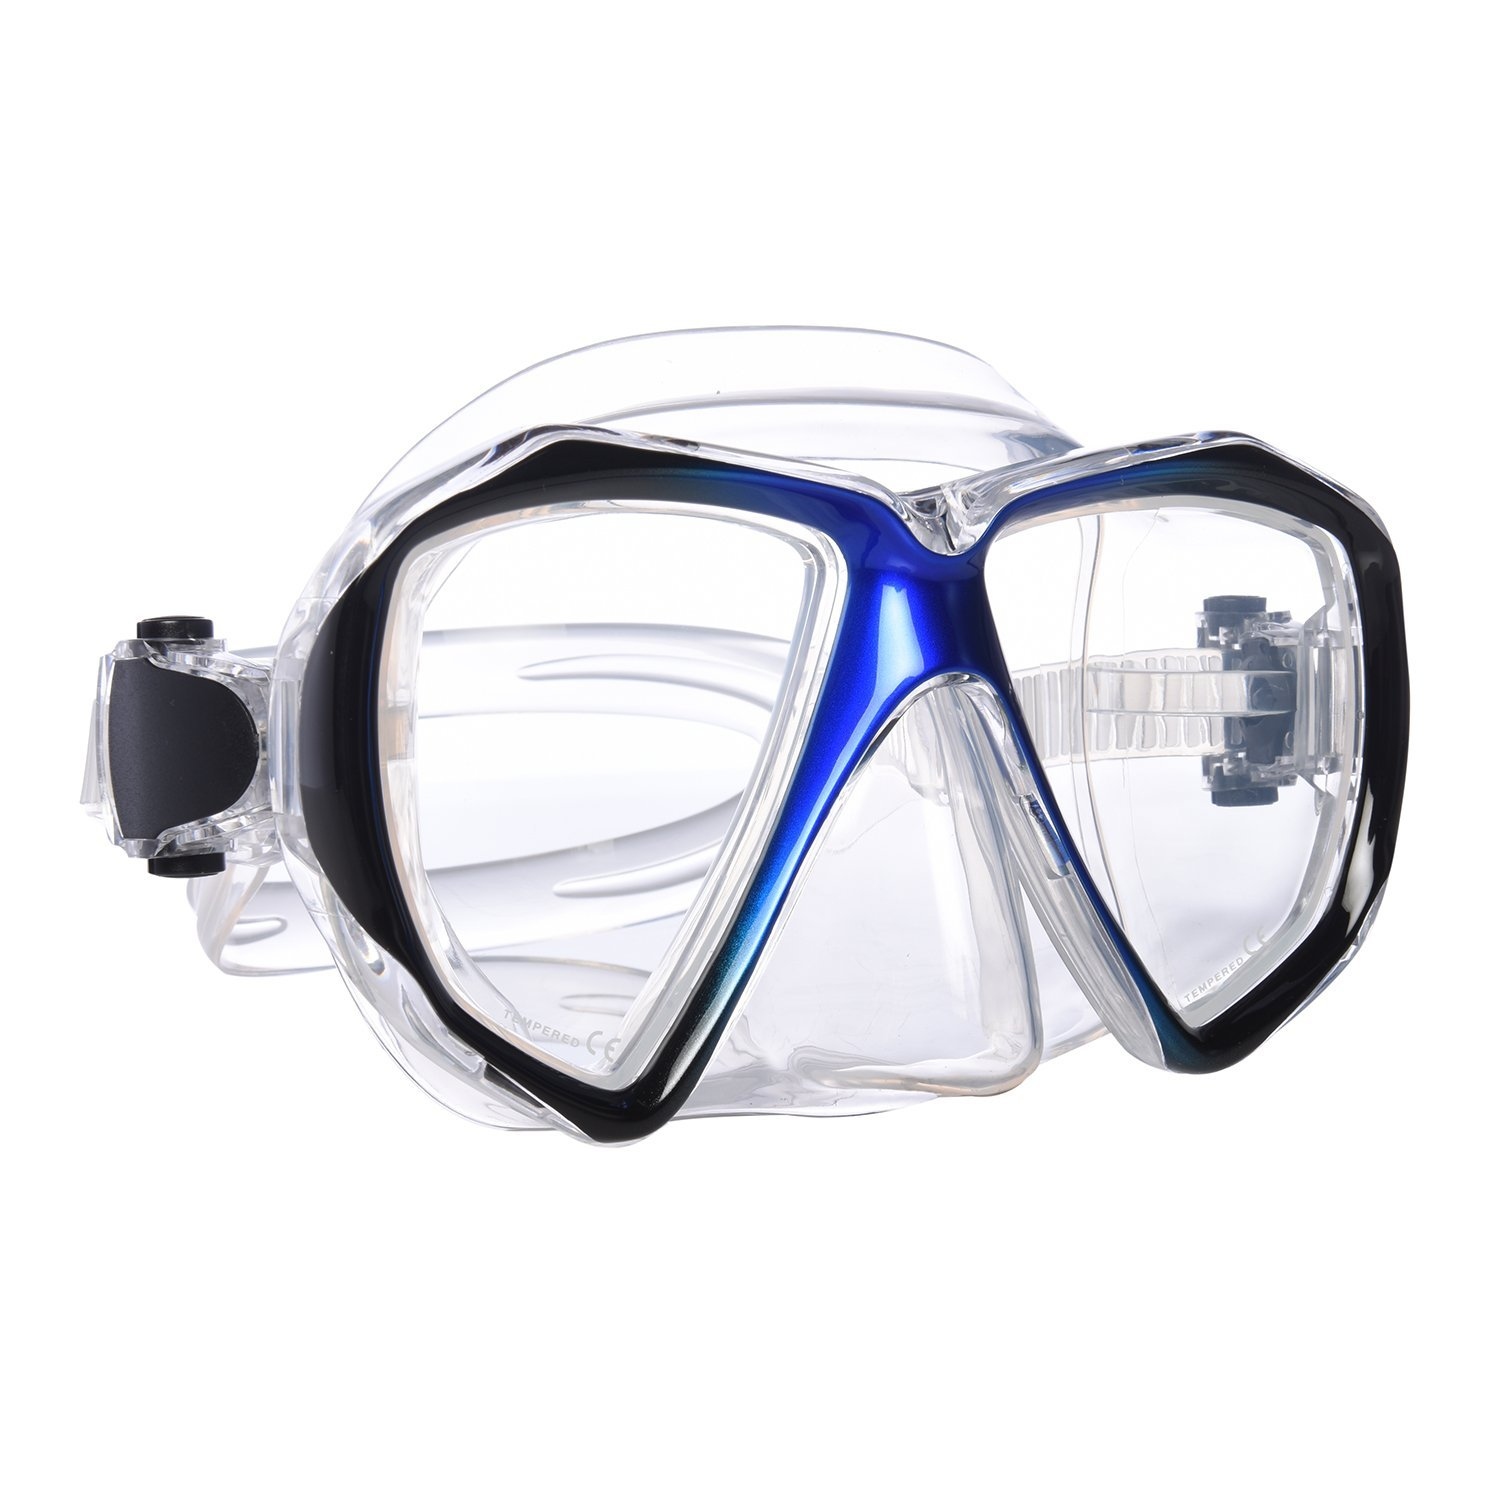 Snorkel Mask - Mask Snorkel - Double Lens diving mask Perfect for Scuba Diving, Snorkeling, Swimming - Ivation